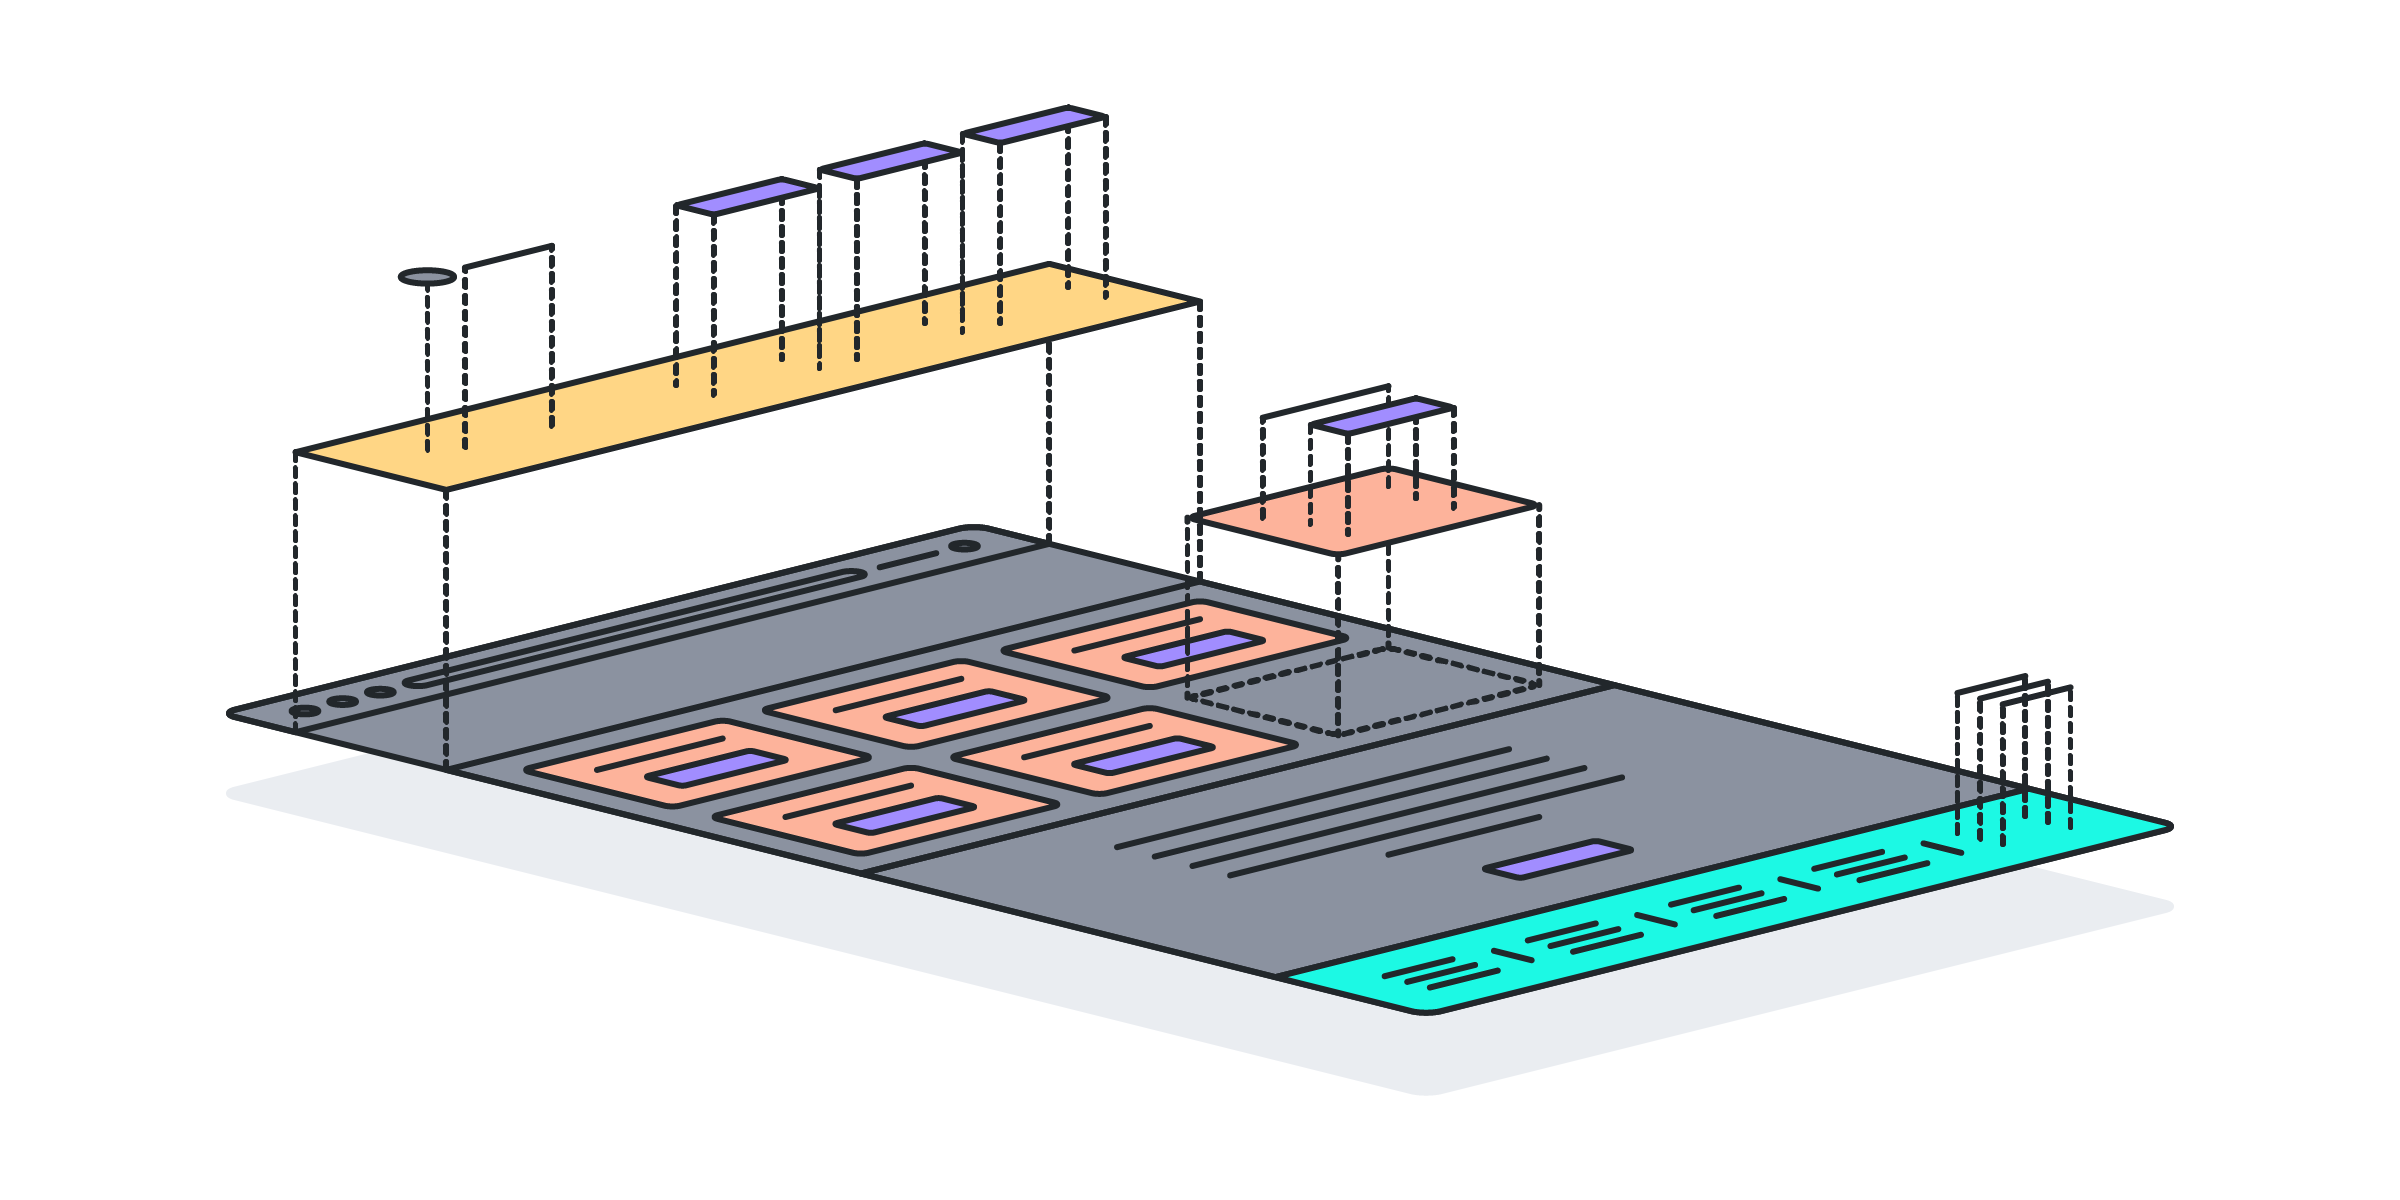 A diagram showing how modules fit together into a design mockup.